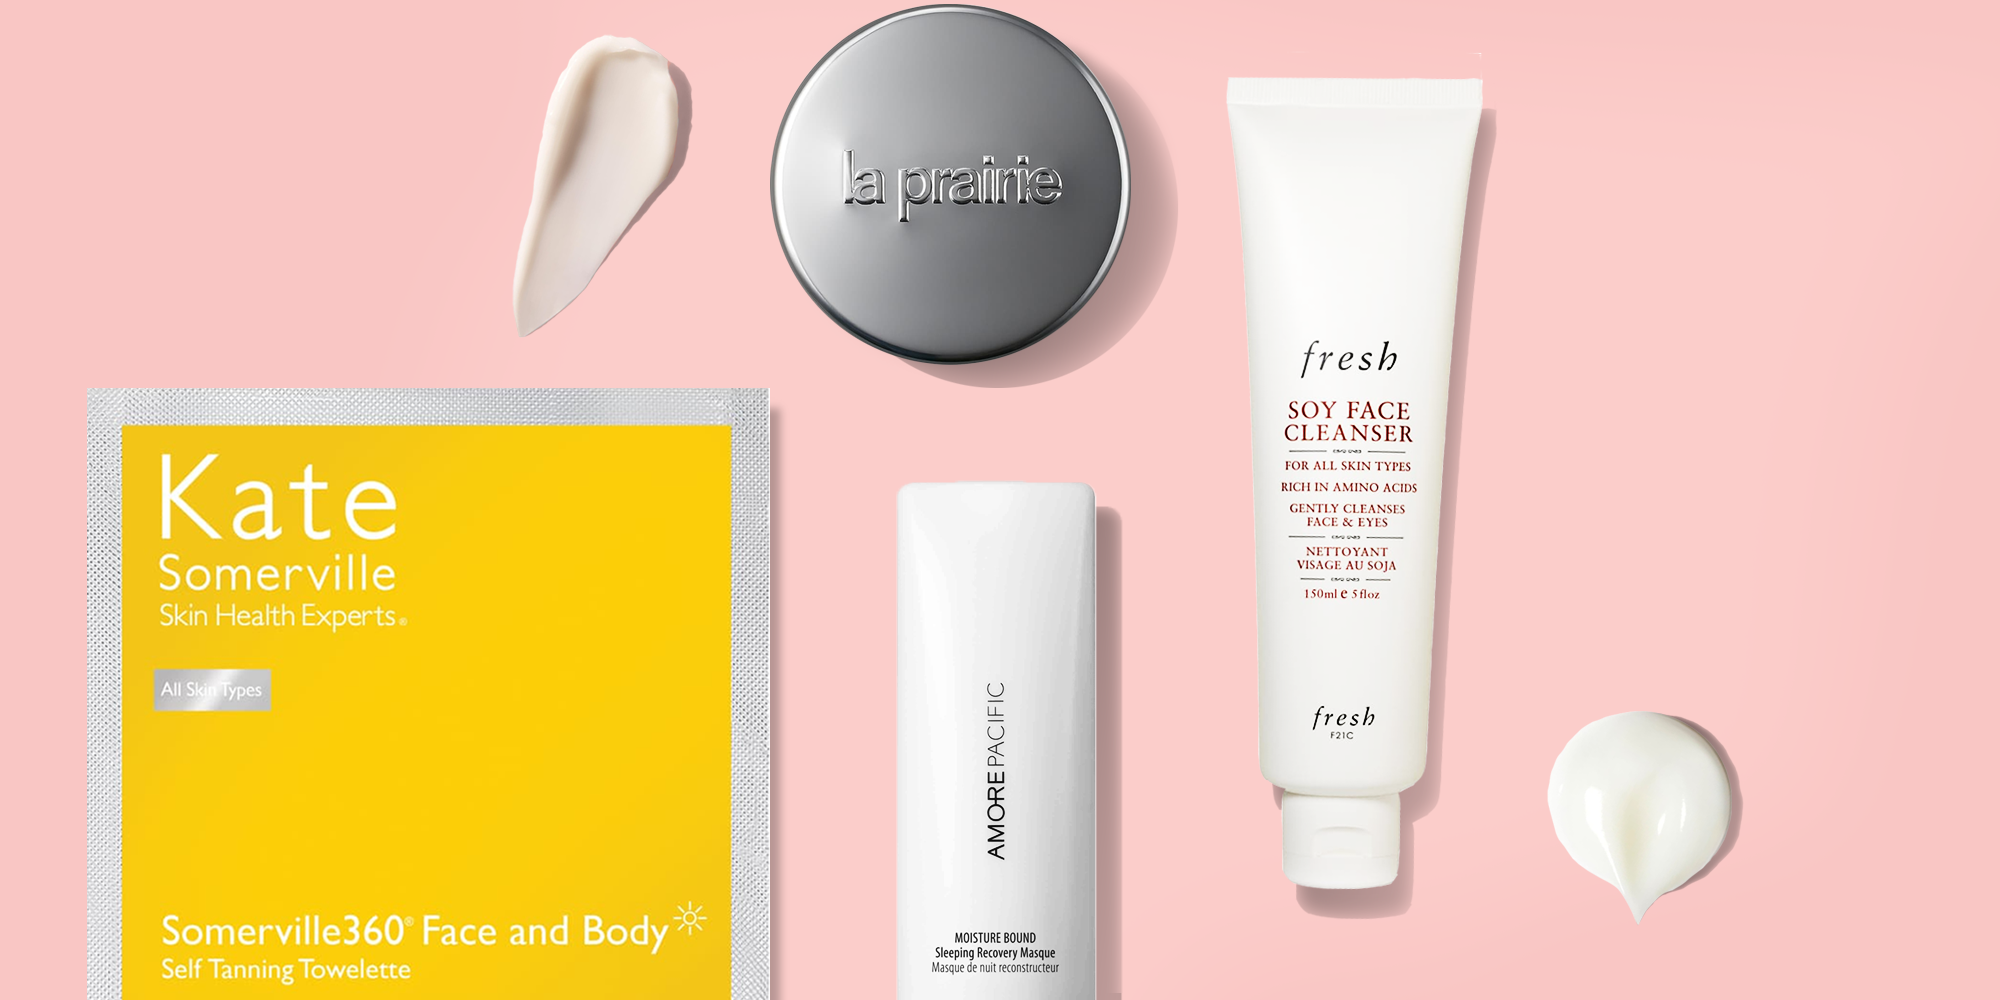 9 Best Skincare Products 9 - Top Skincare Brands in the World